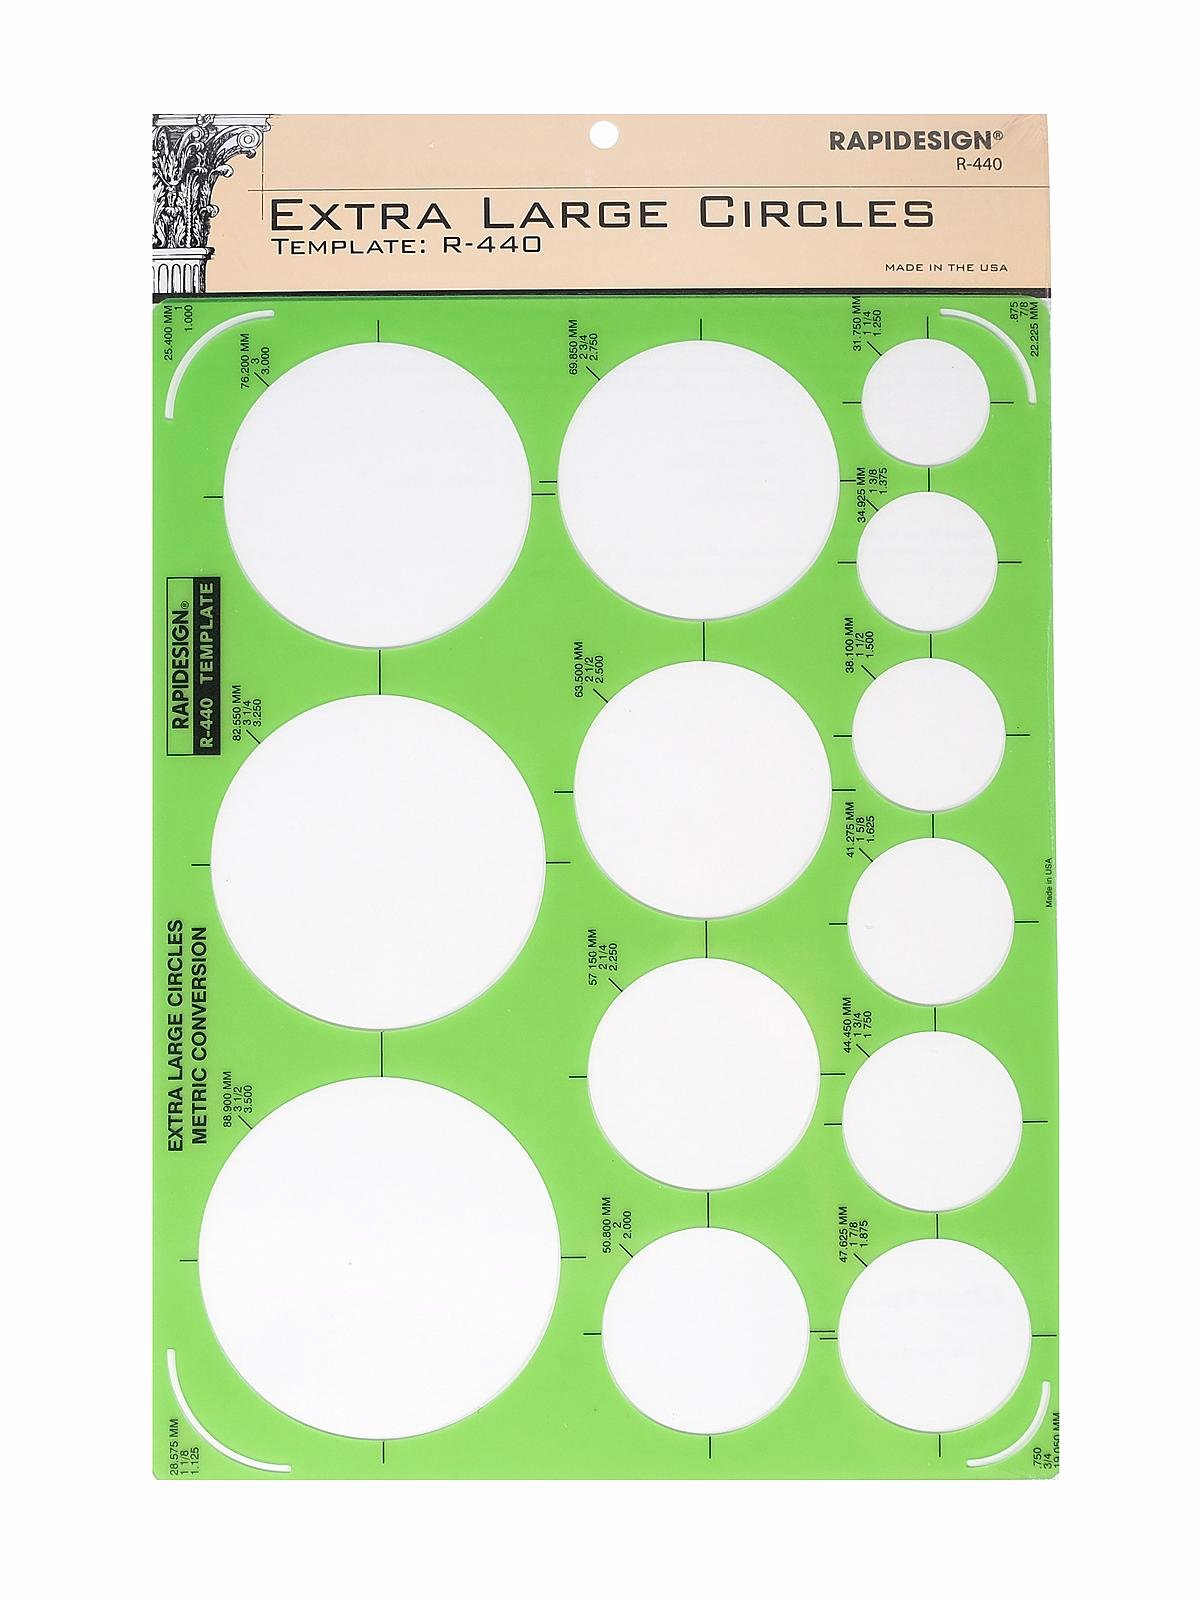 7 Inch Circle Template Beautiful Rapidesign Circle Drafting Templates